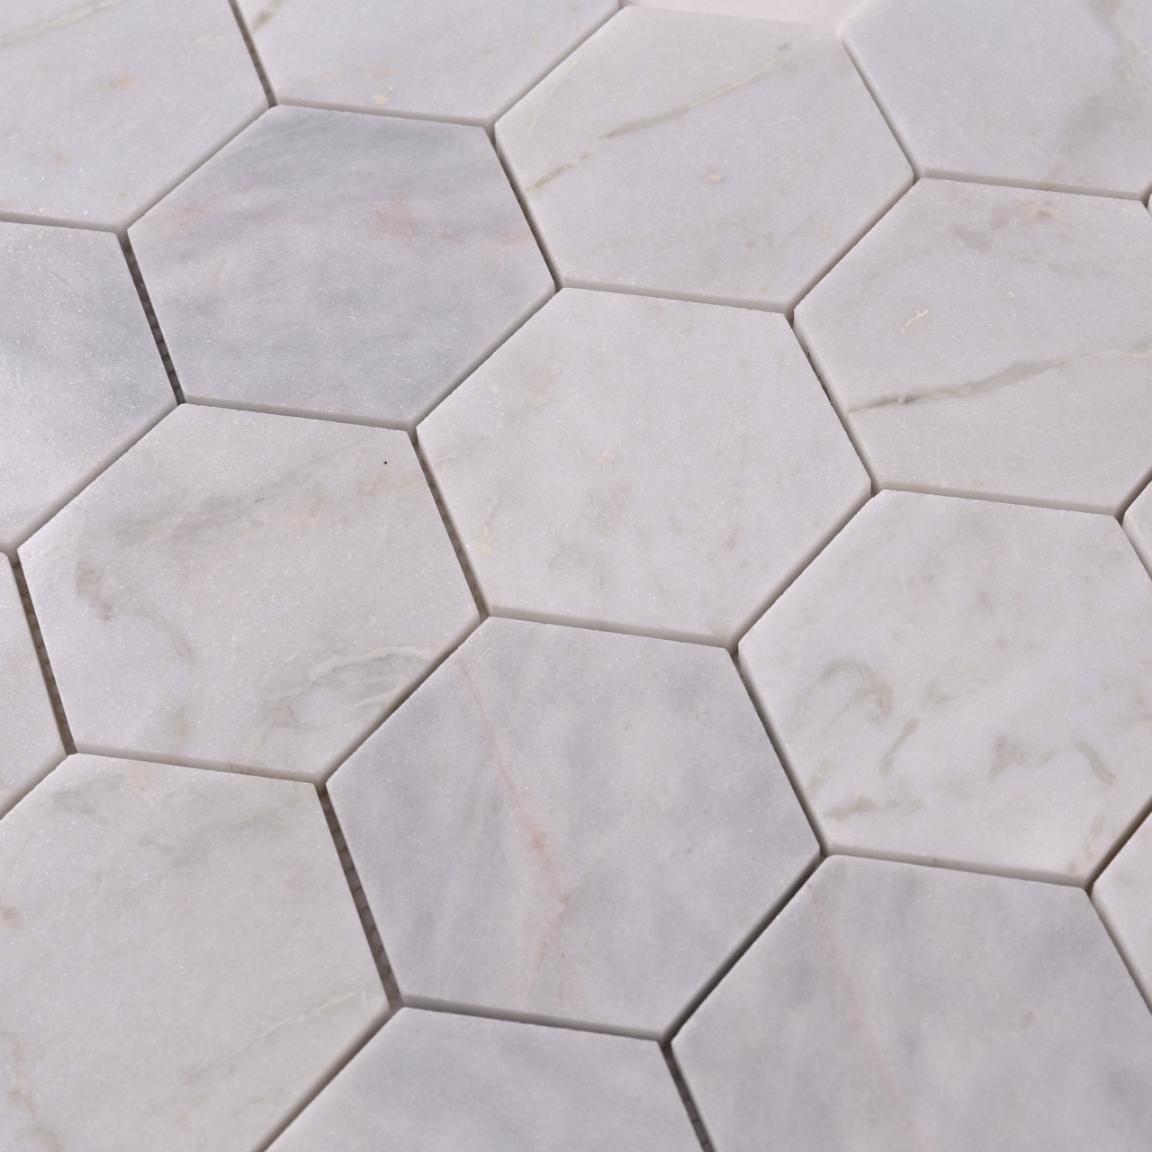 stone carrara herringbone design for bathroom Heng Xing-5